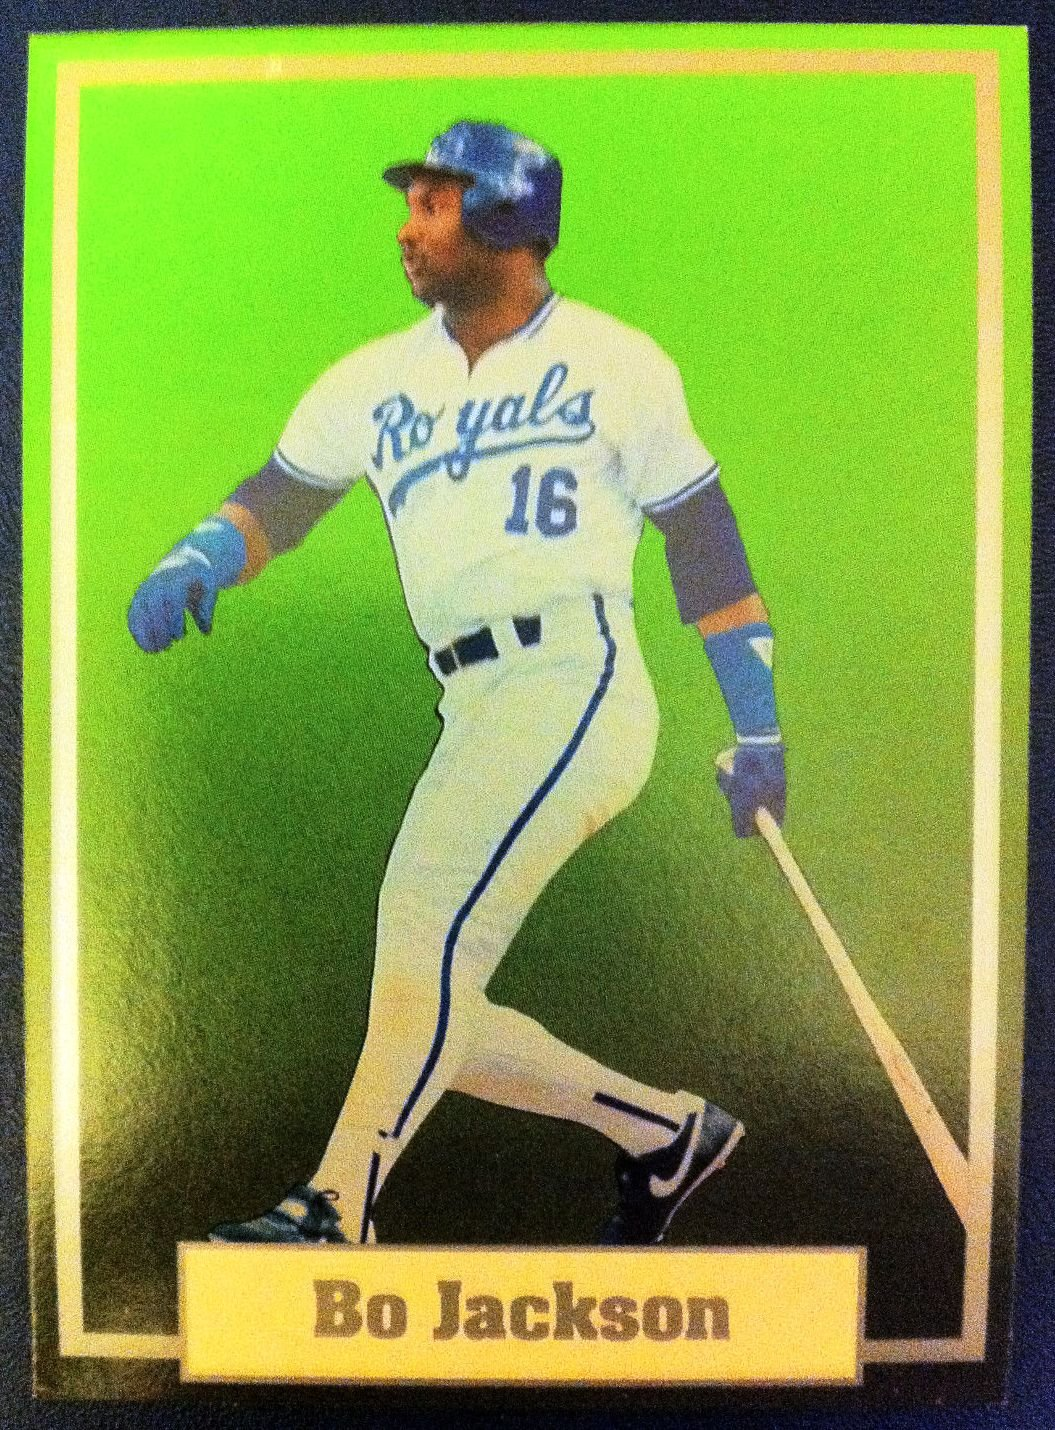 BO JACKSON SAMPLE CARD, KANSAS CITY ROYALS, MLB,SUPER STAR ELITE 1989-90, 001